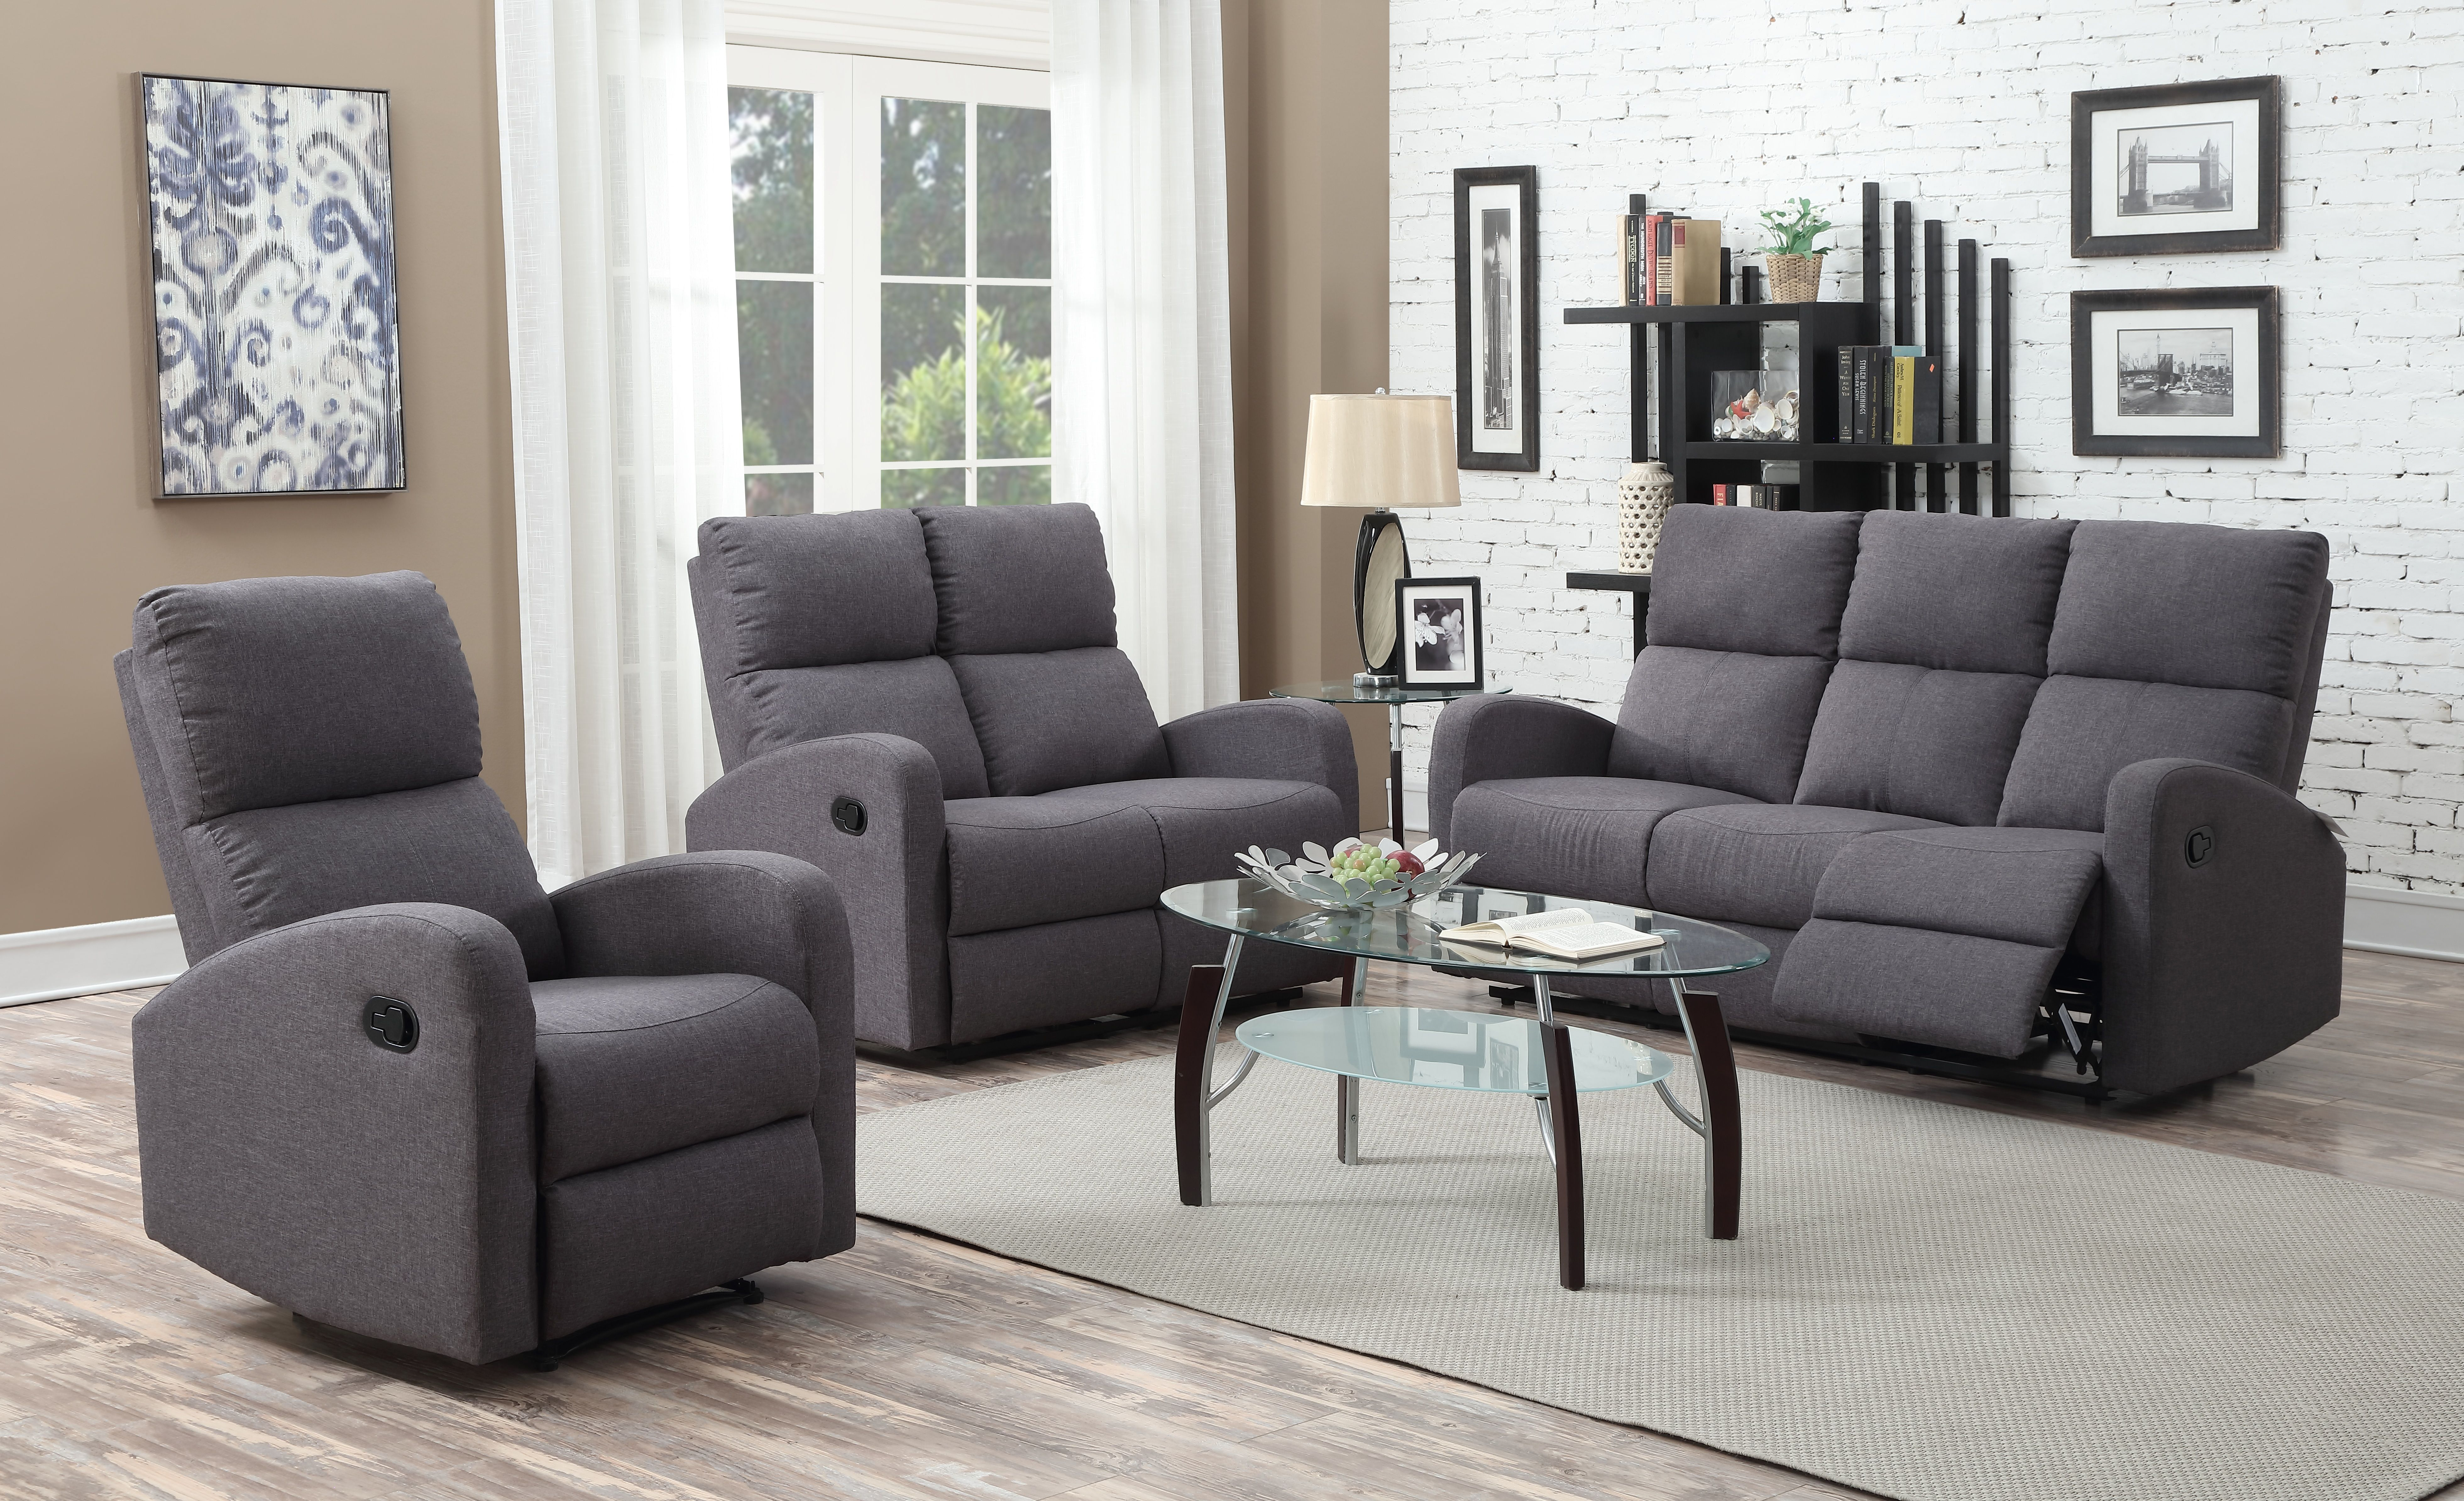 K Living Maya Reclining Sofa Set This Sofa Set Will Be The Perfect Addition To Any Entertainment Area The Maya Reclin Sofa Suites Reclining Sofa Furniture Uk